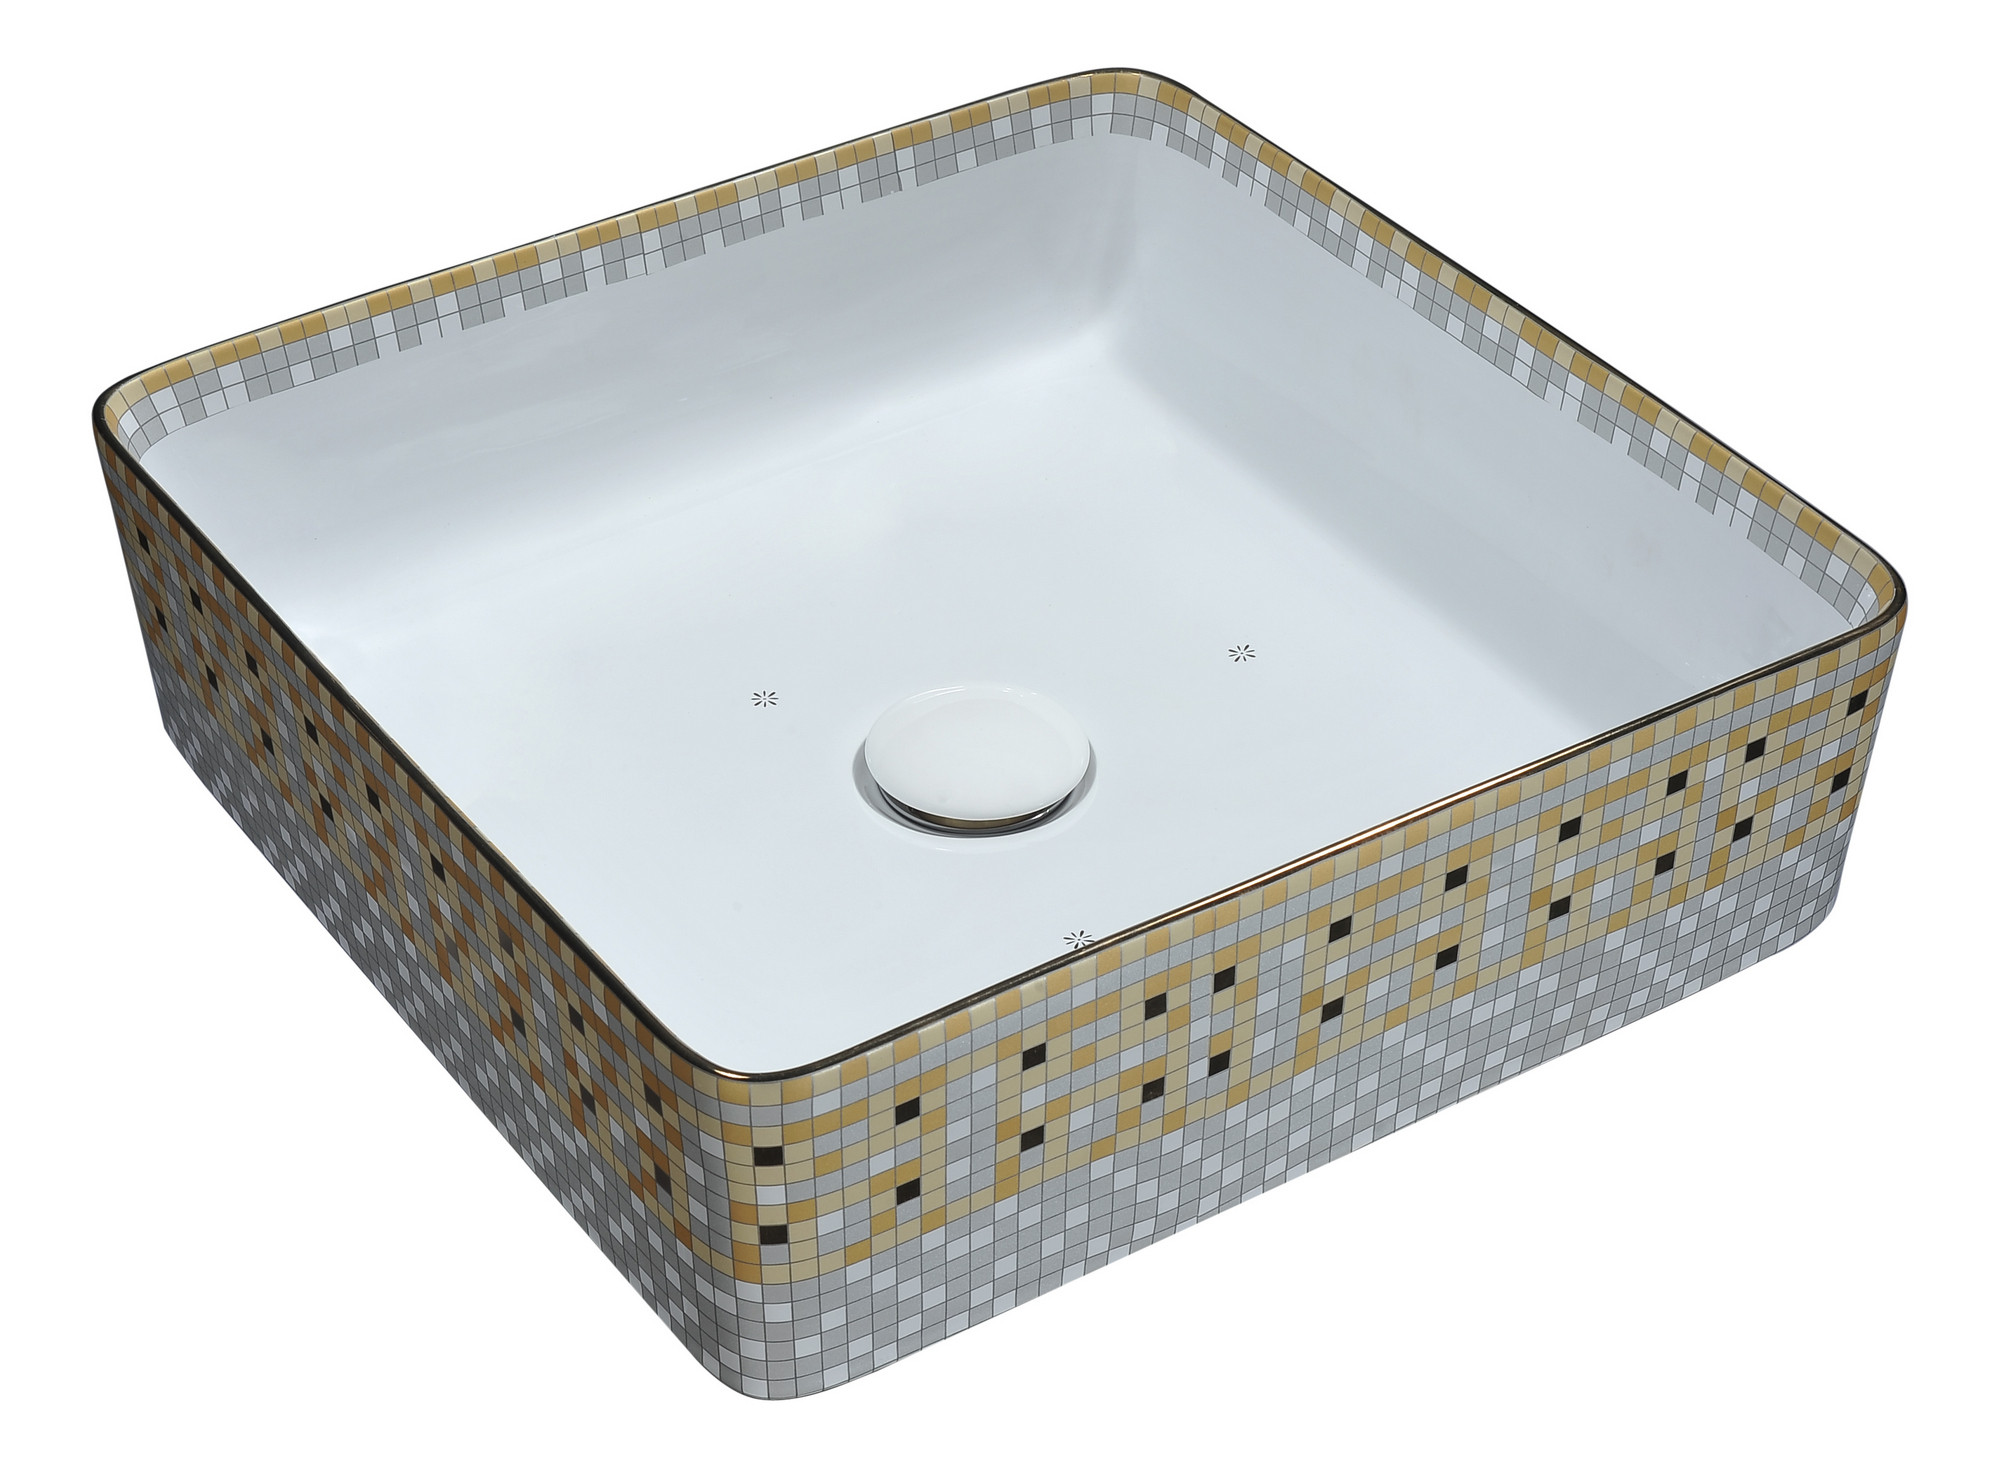 ANZZI LS-AZ265 Byzantian Series Ceramic Vessel Sink In Mosaic Gold